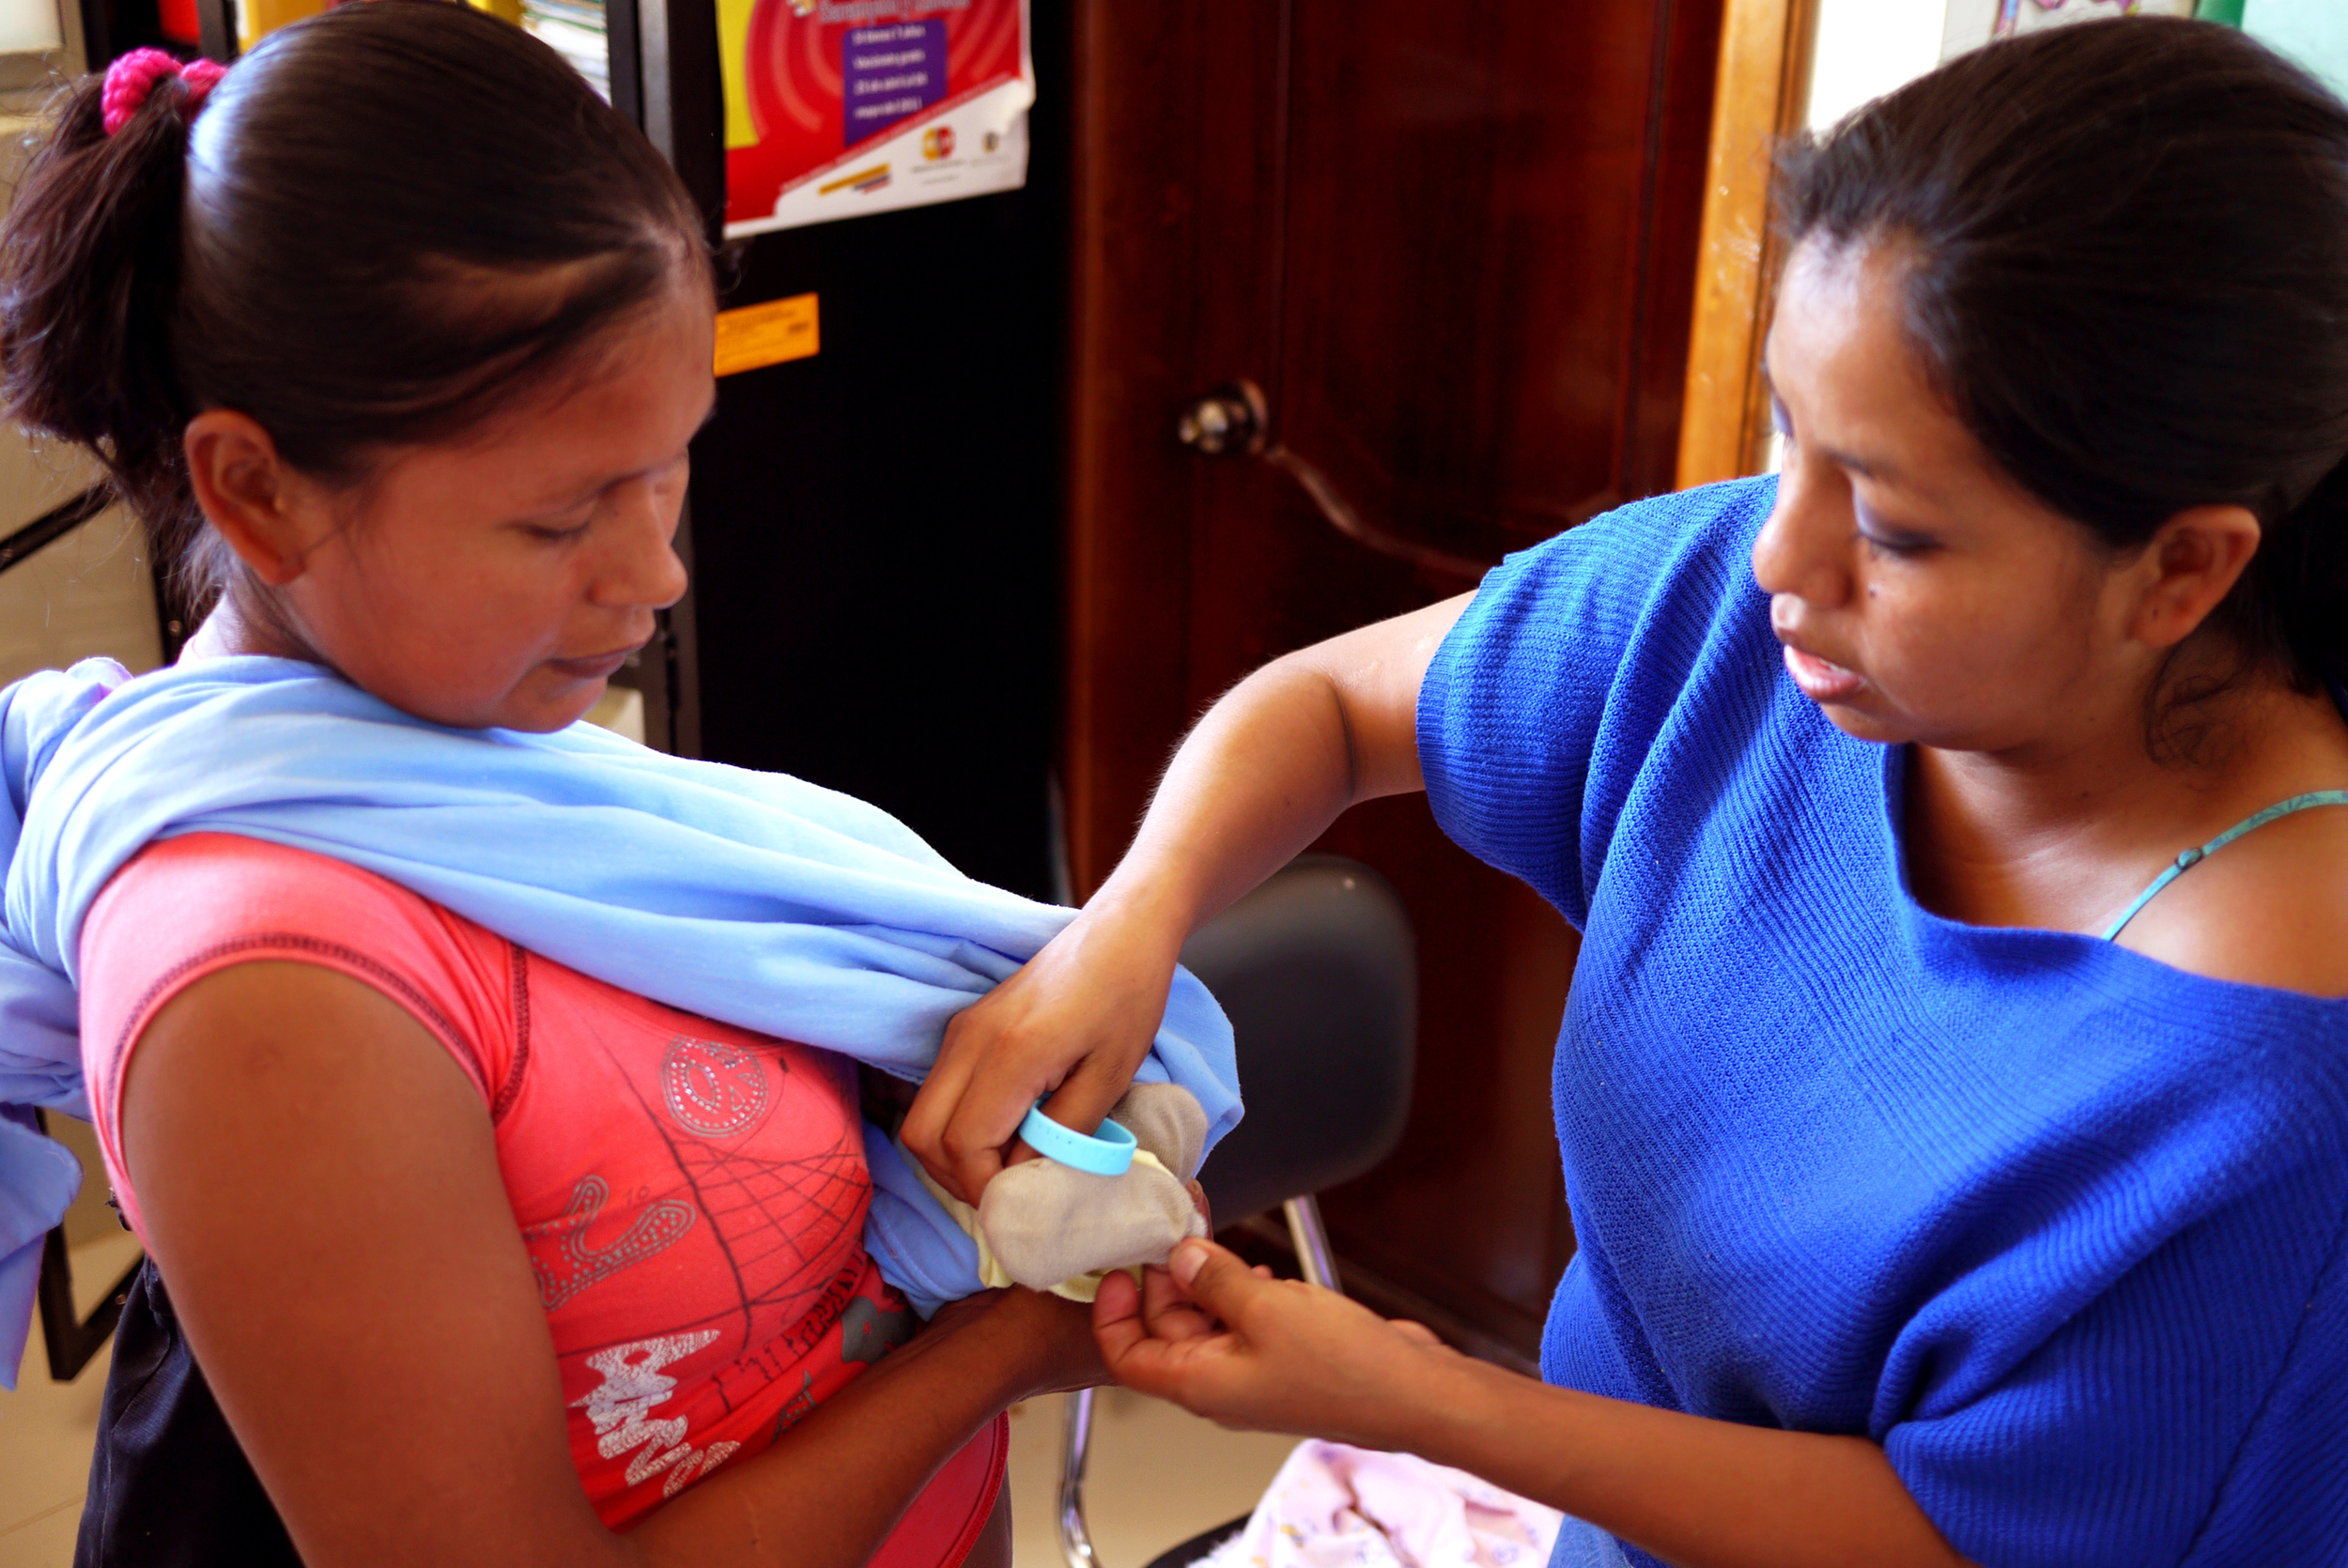 Guadalupe (right), a local vaccine expert in Ecuador, puts a bracelet on this mother's infant to help his mom remember when to return to this clinic for the next vaccination appointment. Photo taken: June 25, 2013.